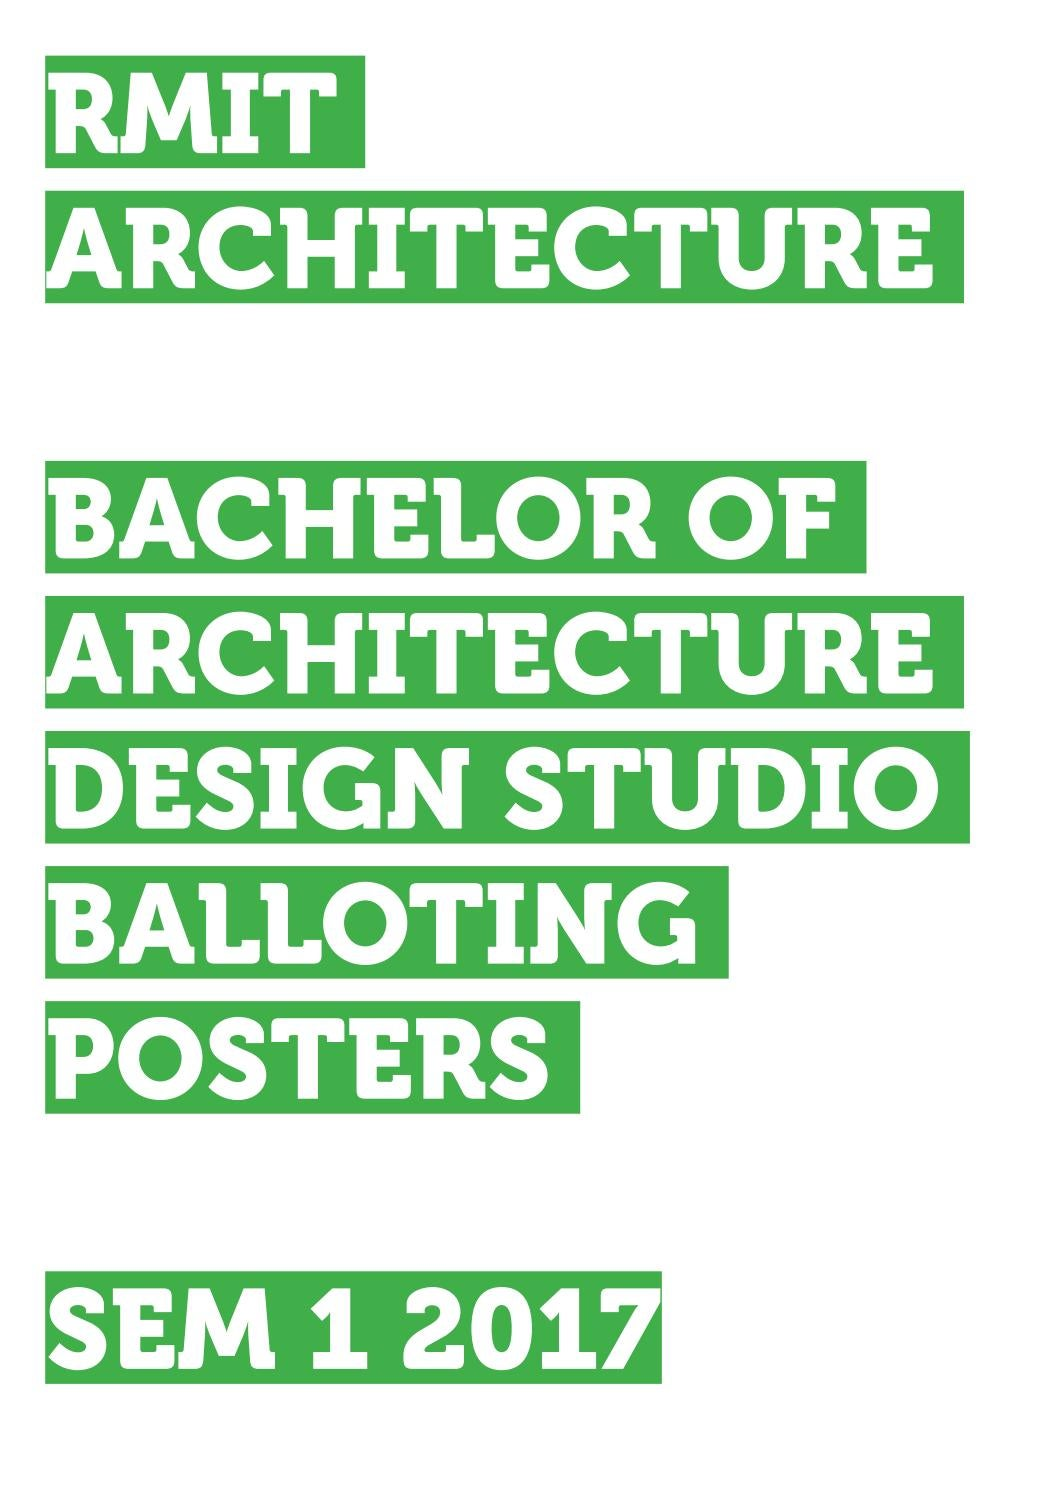 RMIT Bachelor Of Architecture Studio Posters, S1, 2017 By RMIT Architecture  Studios   Issuu